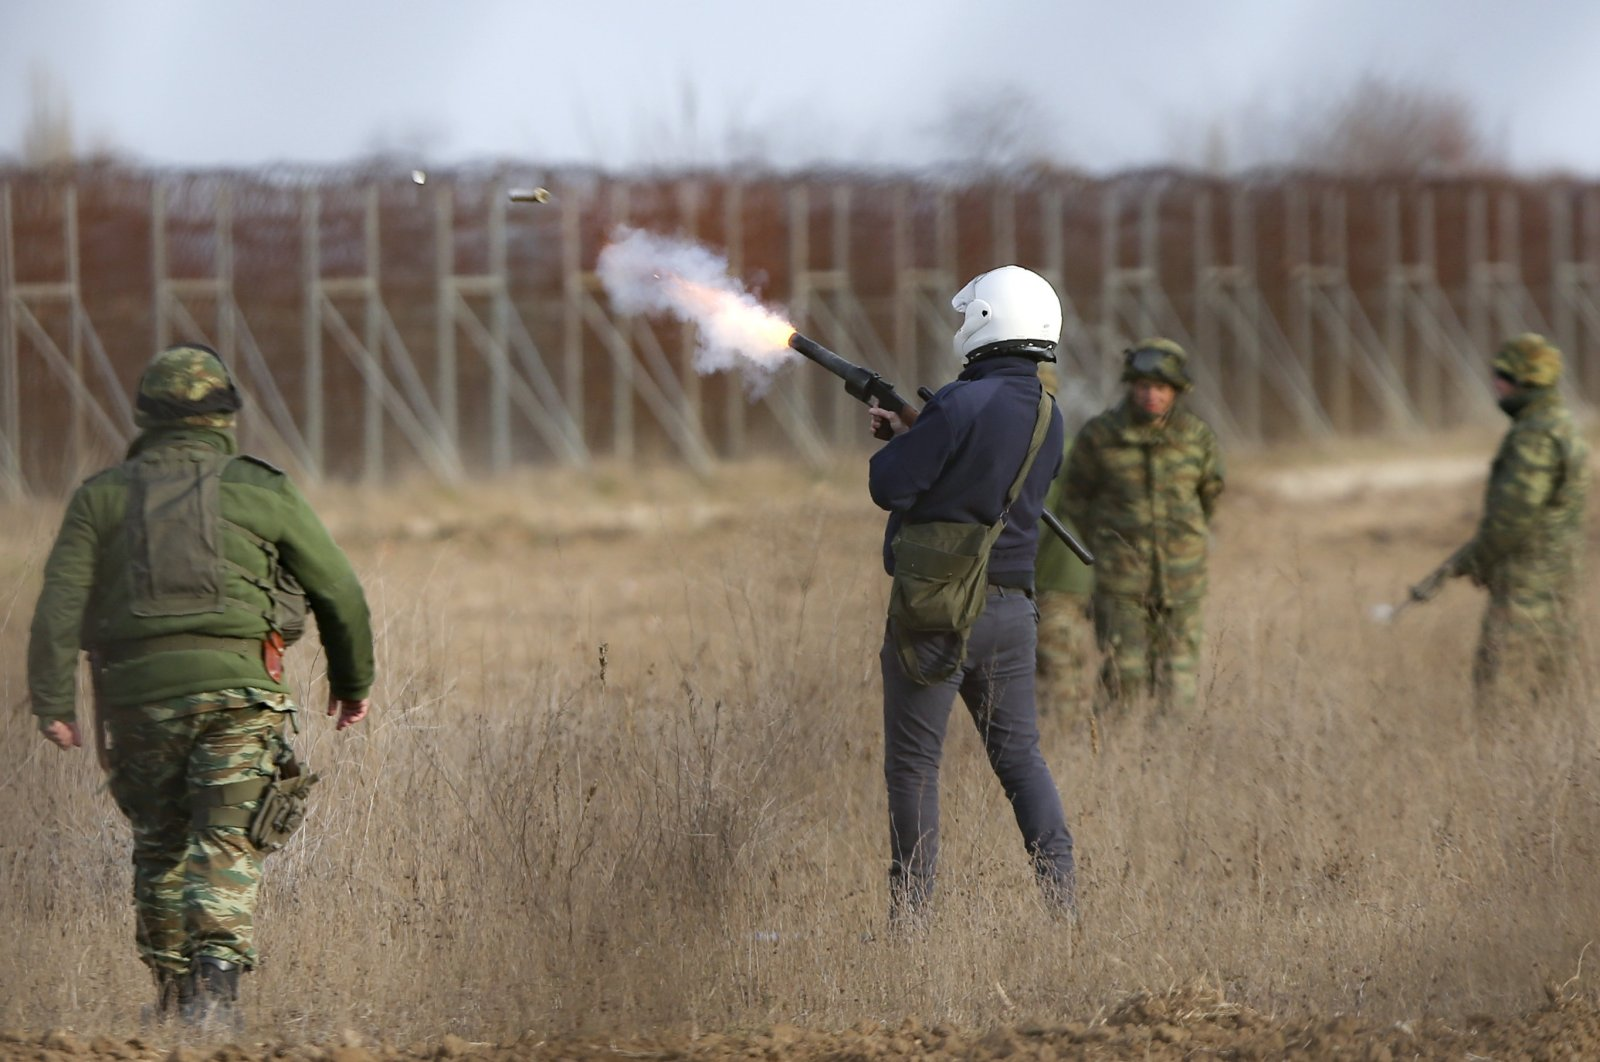 Members of the Greek military fire tear gas canisters during clashes between migrants and Greek police and army personnel near the Kastanies border gate at the Greek-Turkish border, March 1, 2020. (AP Photo)